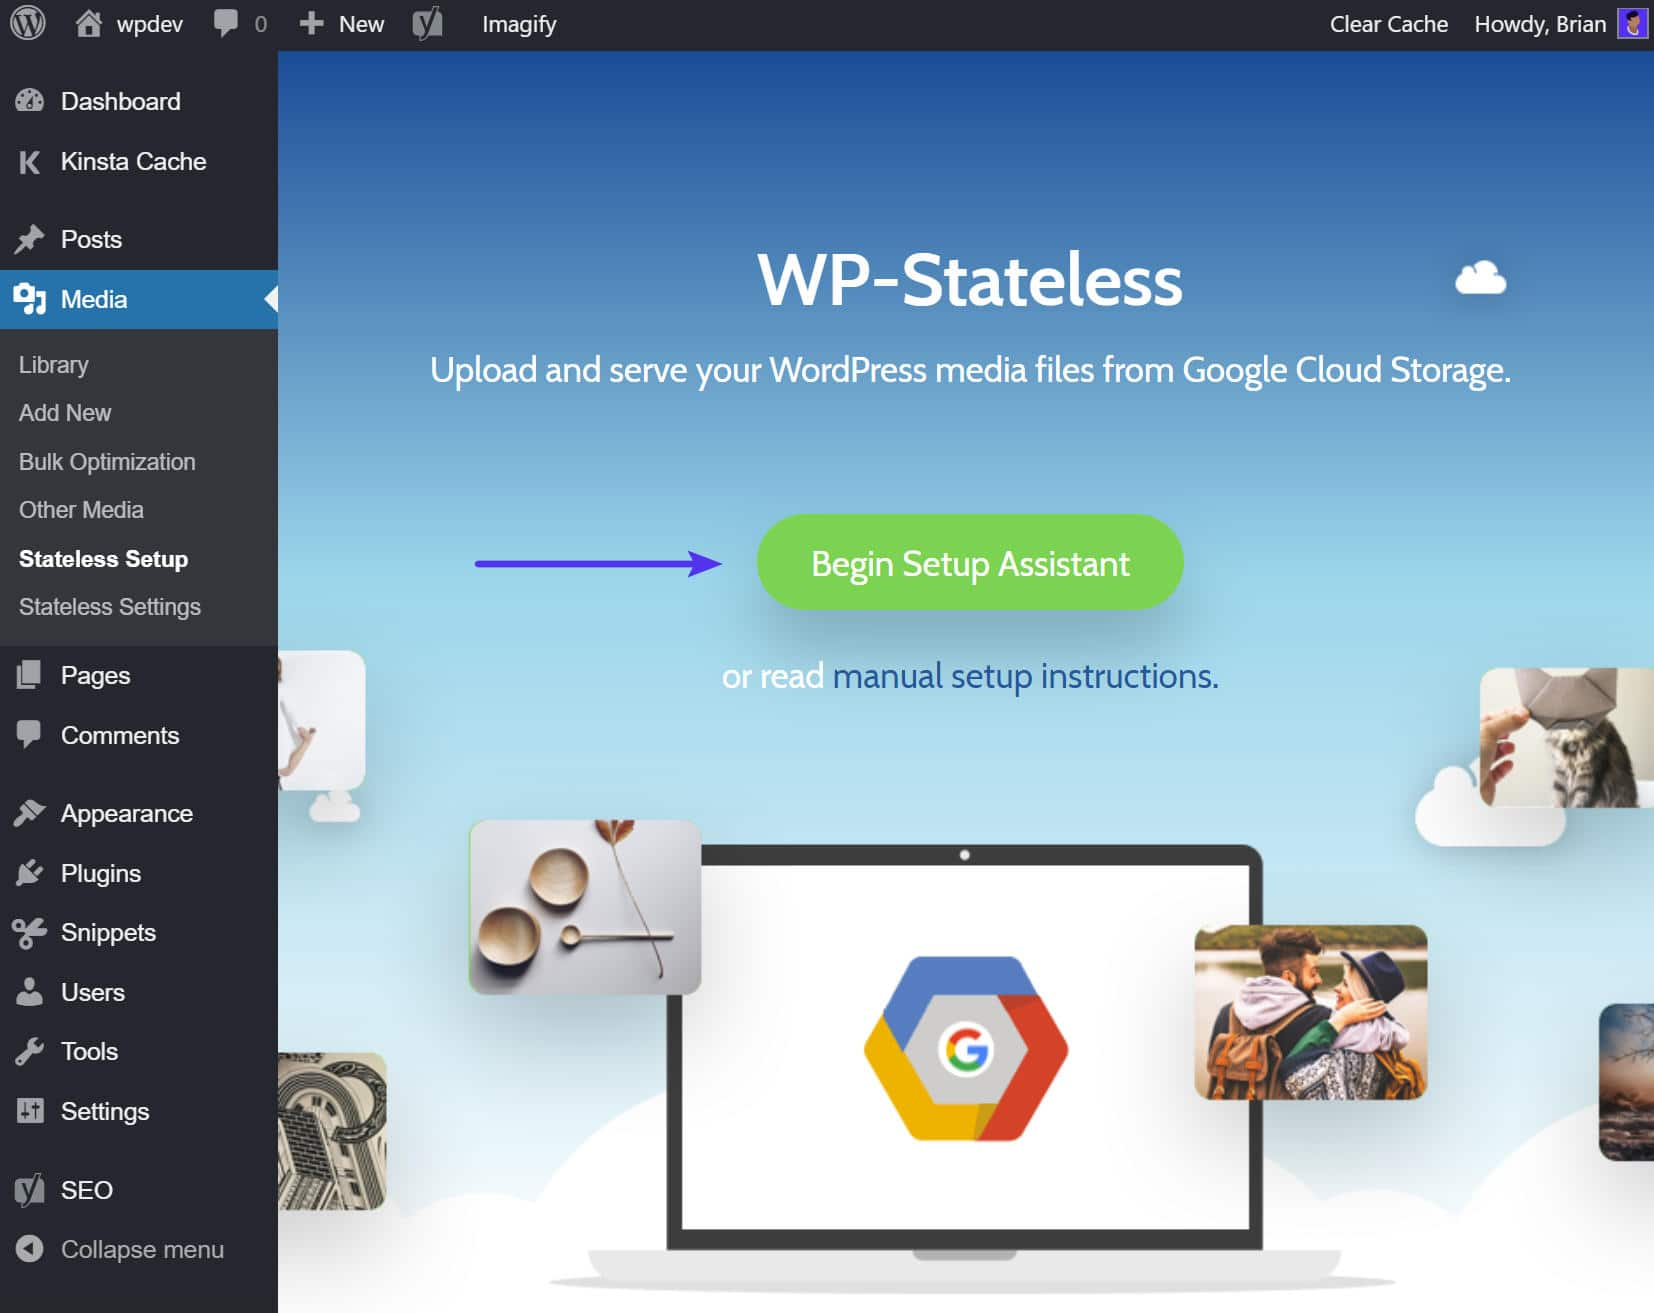 WP-Stateless Setup